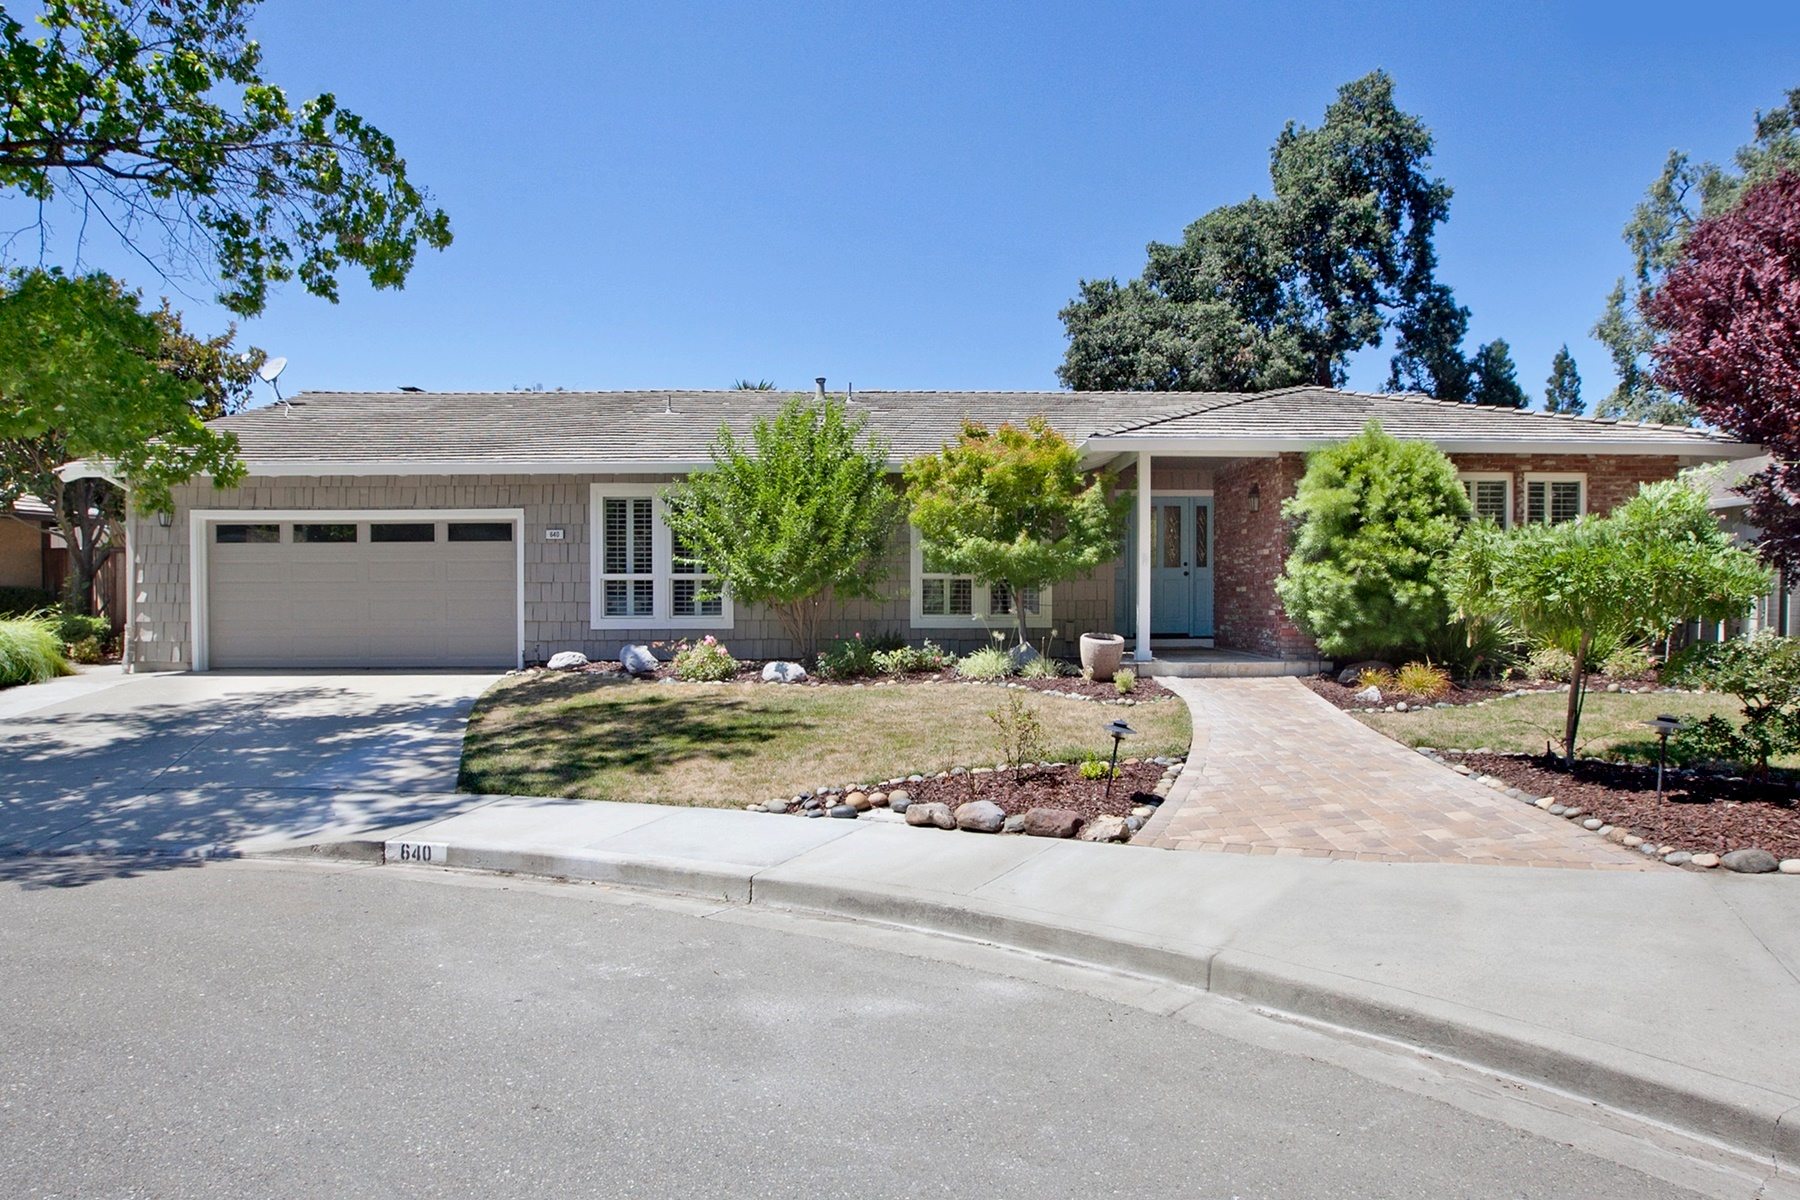 Single Family Home for Sale at Beautifully Remodeled Ranch Style 640 Eliska Court Walnut Creek, California 94598 United States